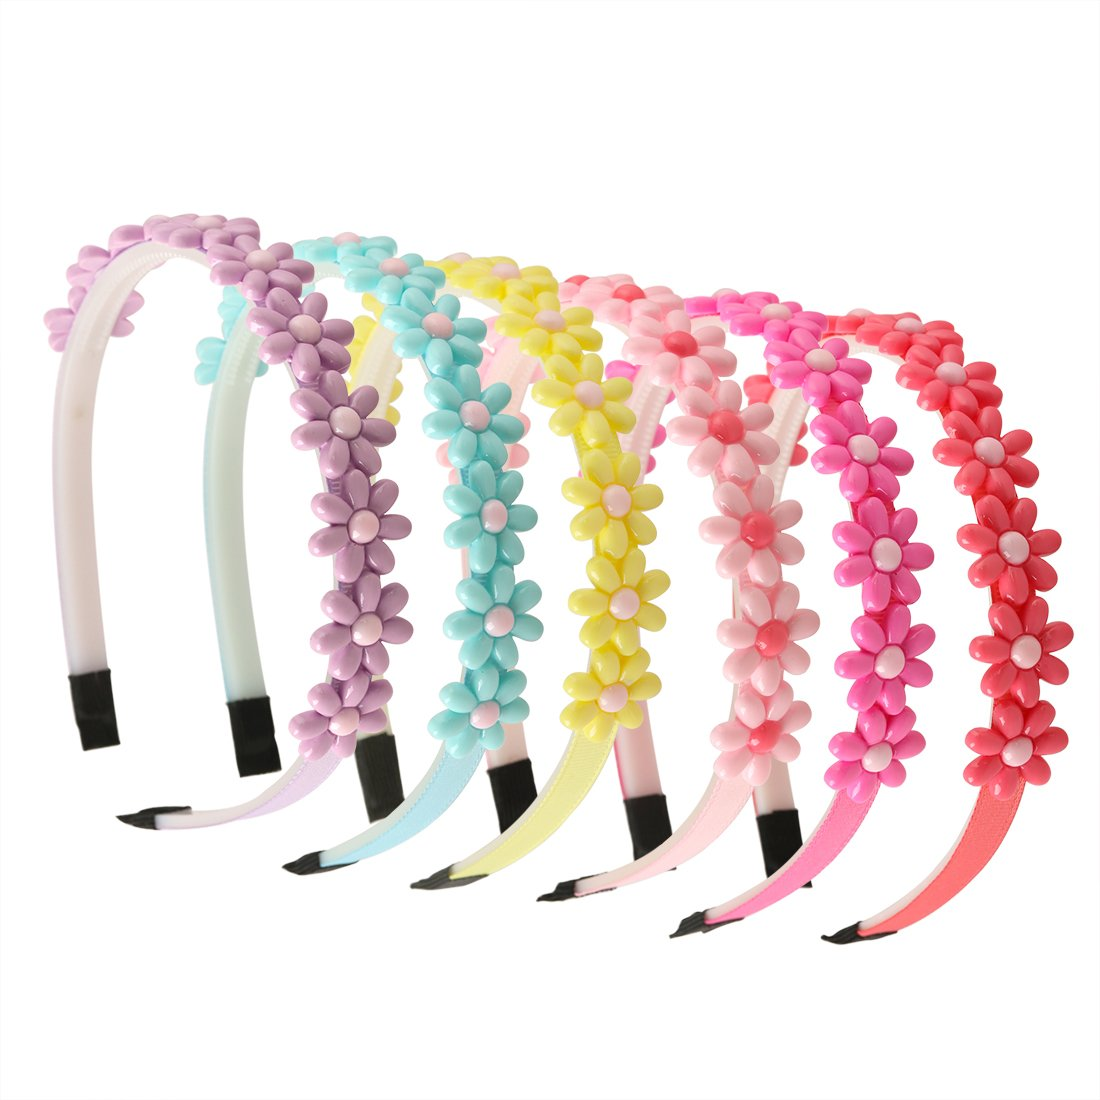 XIMA 6pcs Flower Headband for Girls Teens Kids Gifts Hair Accessories Spring Colors